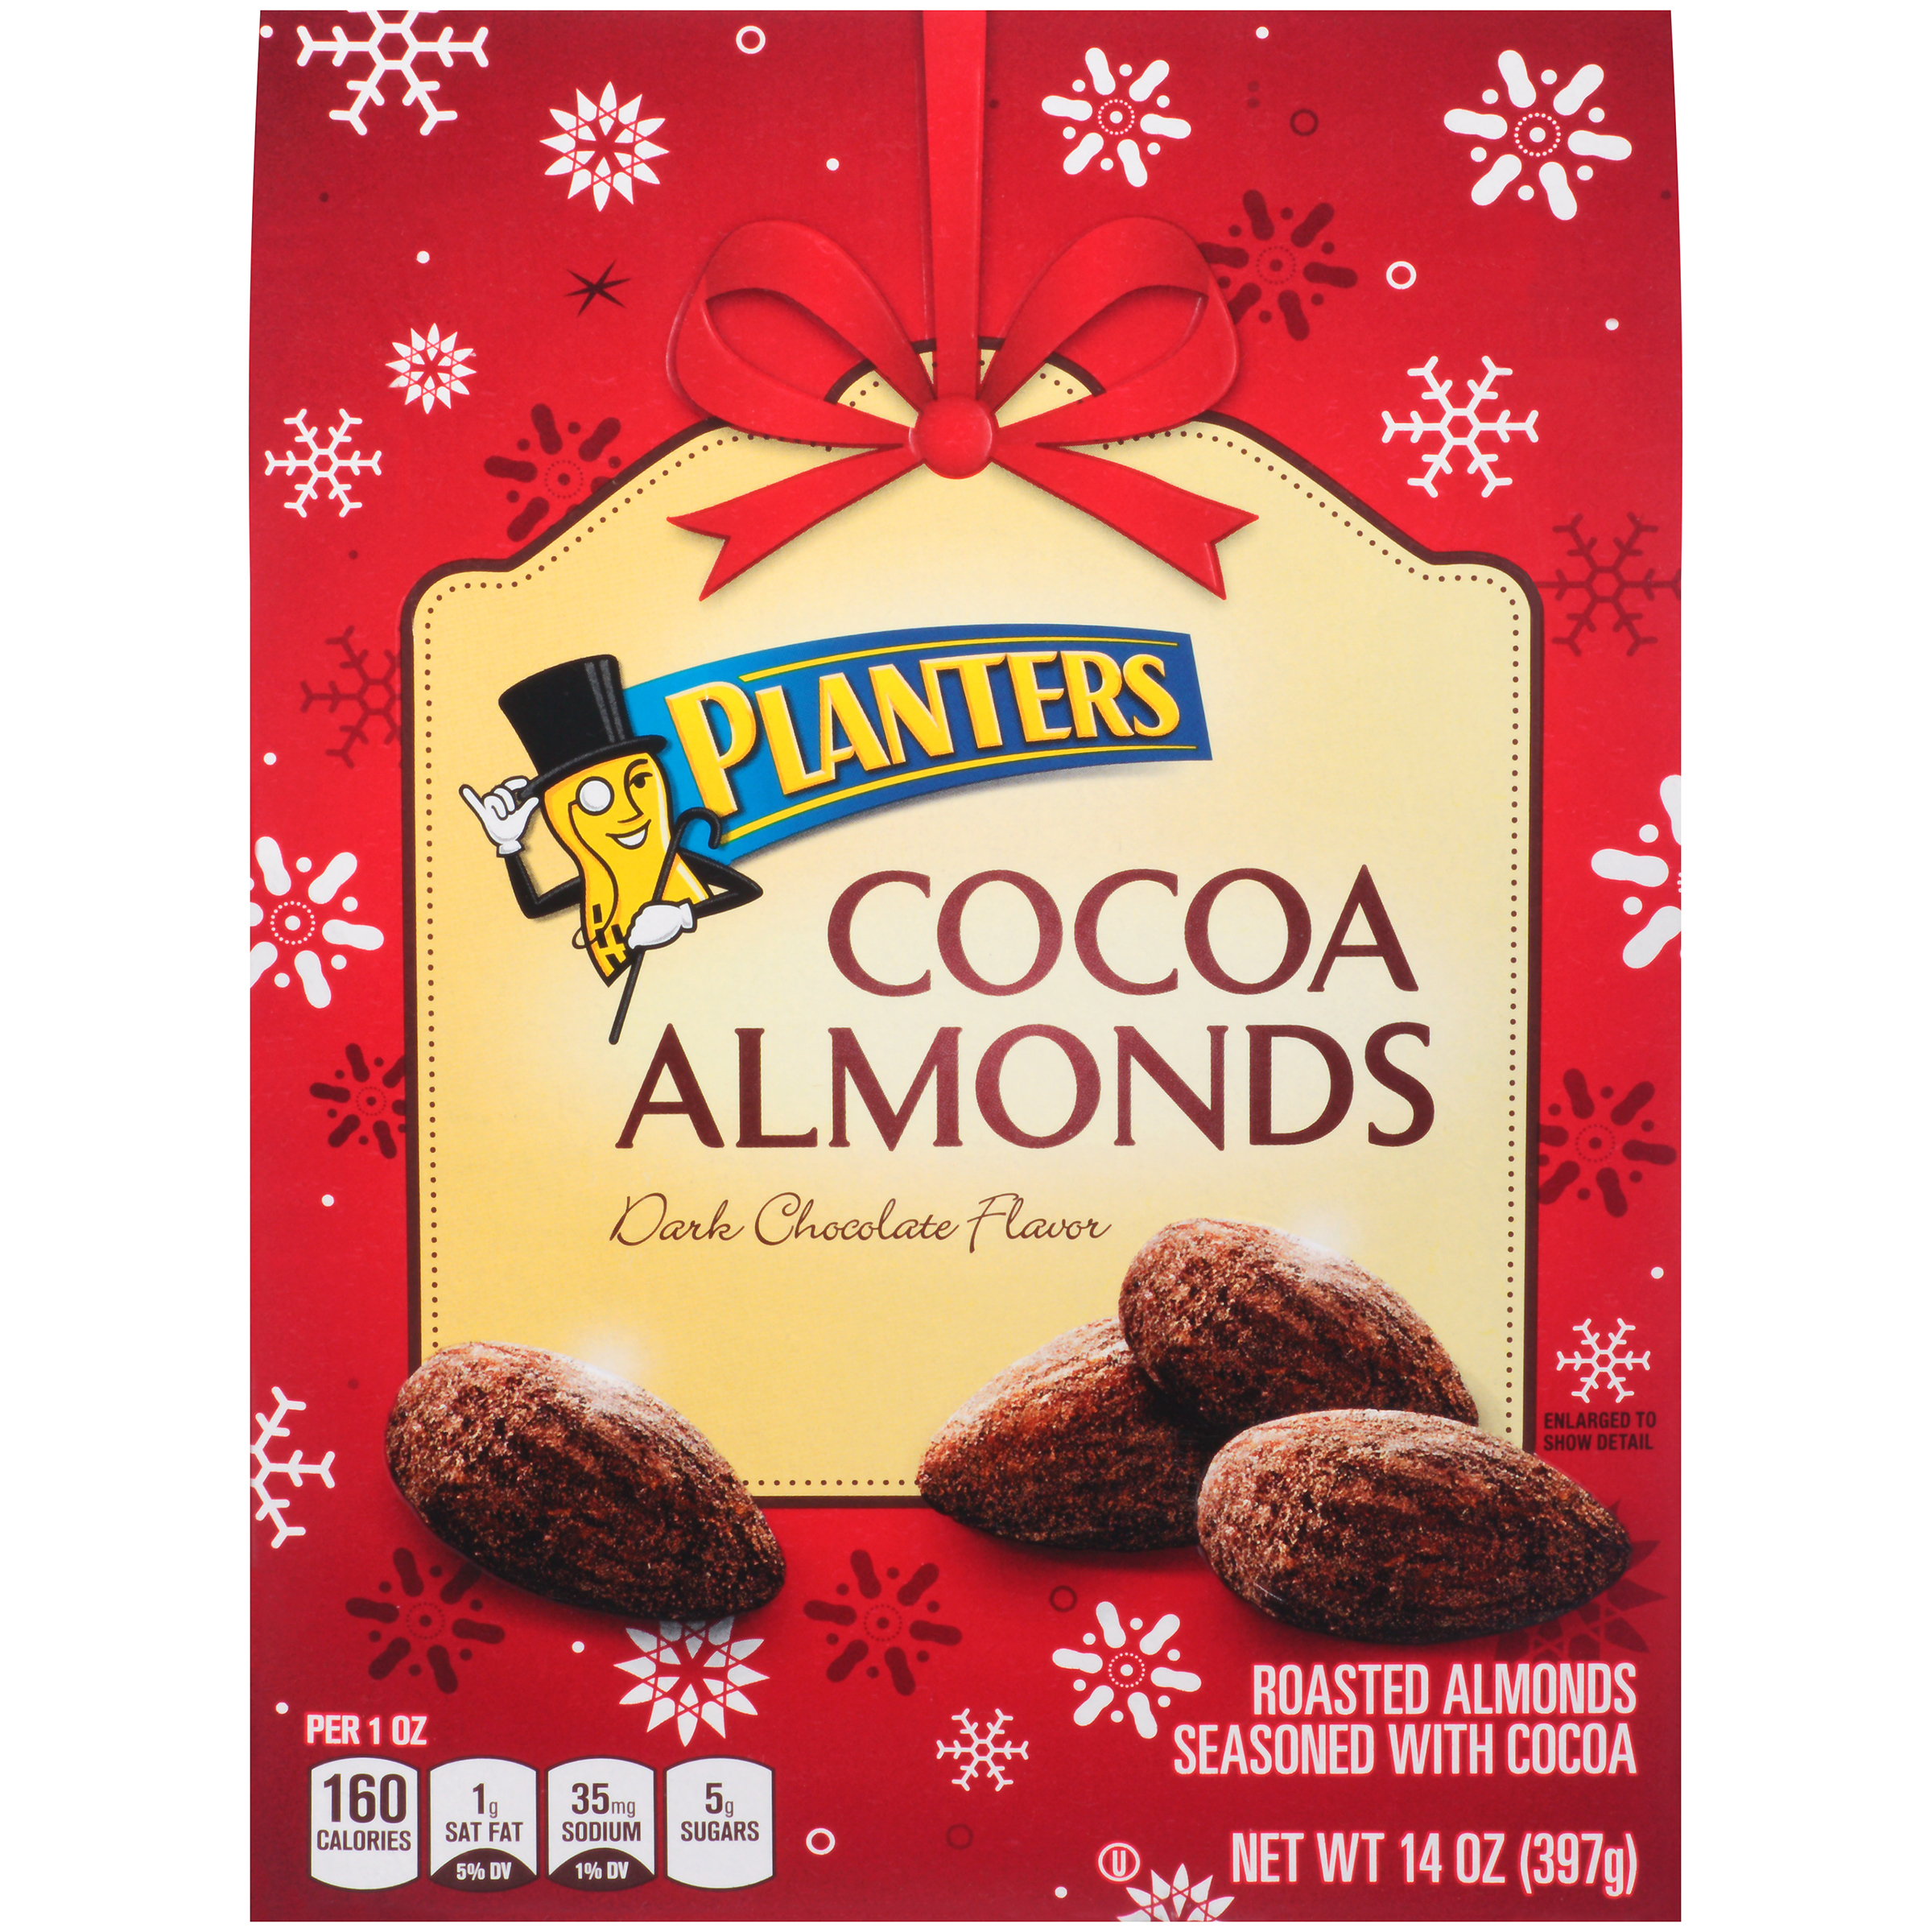 Planters Cocoa Almonds 14 oz. Box image